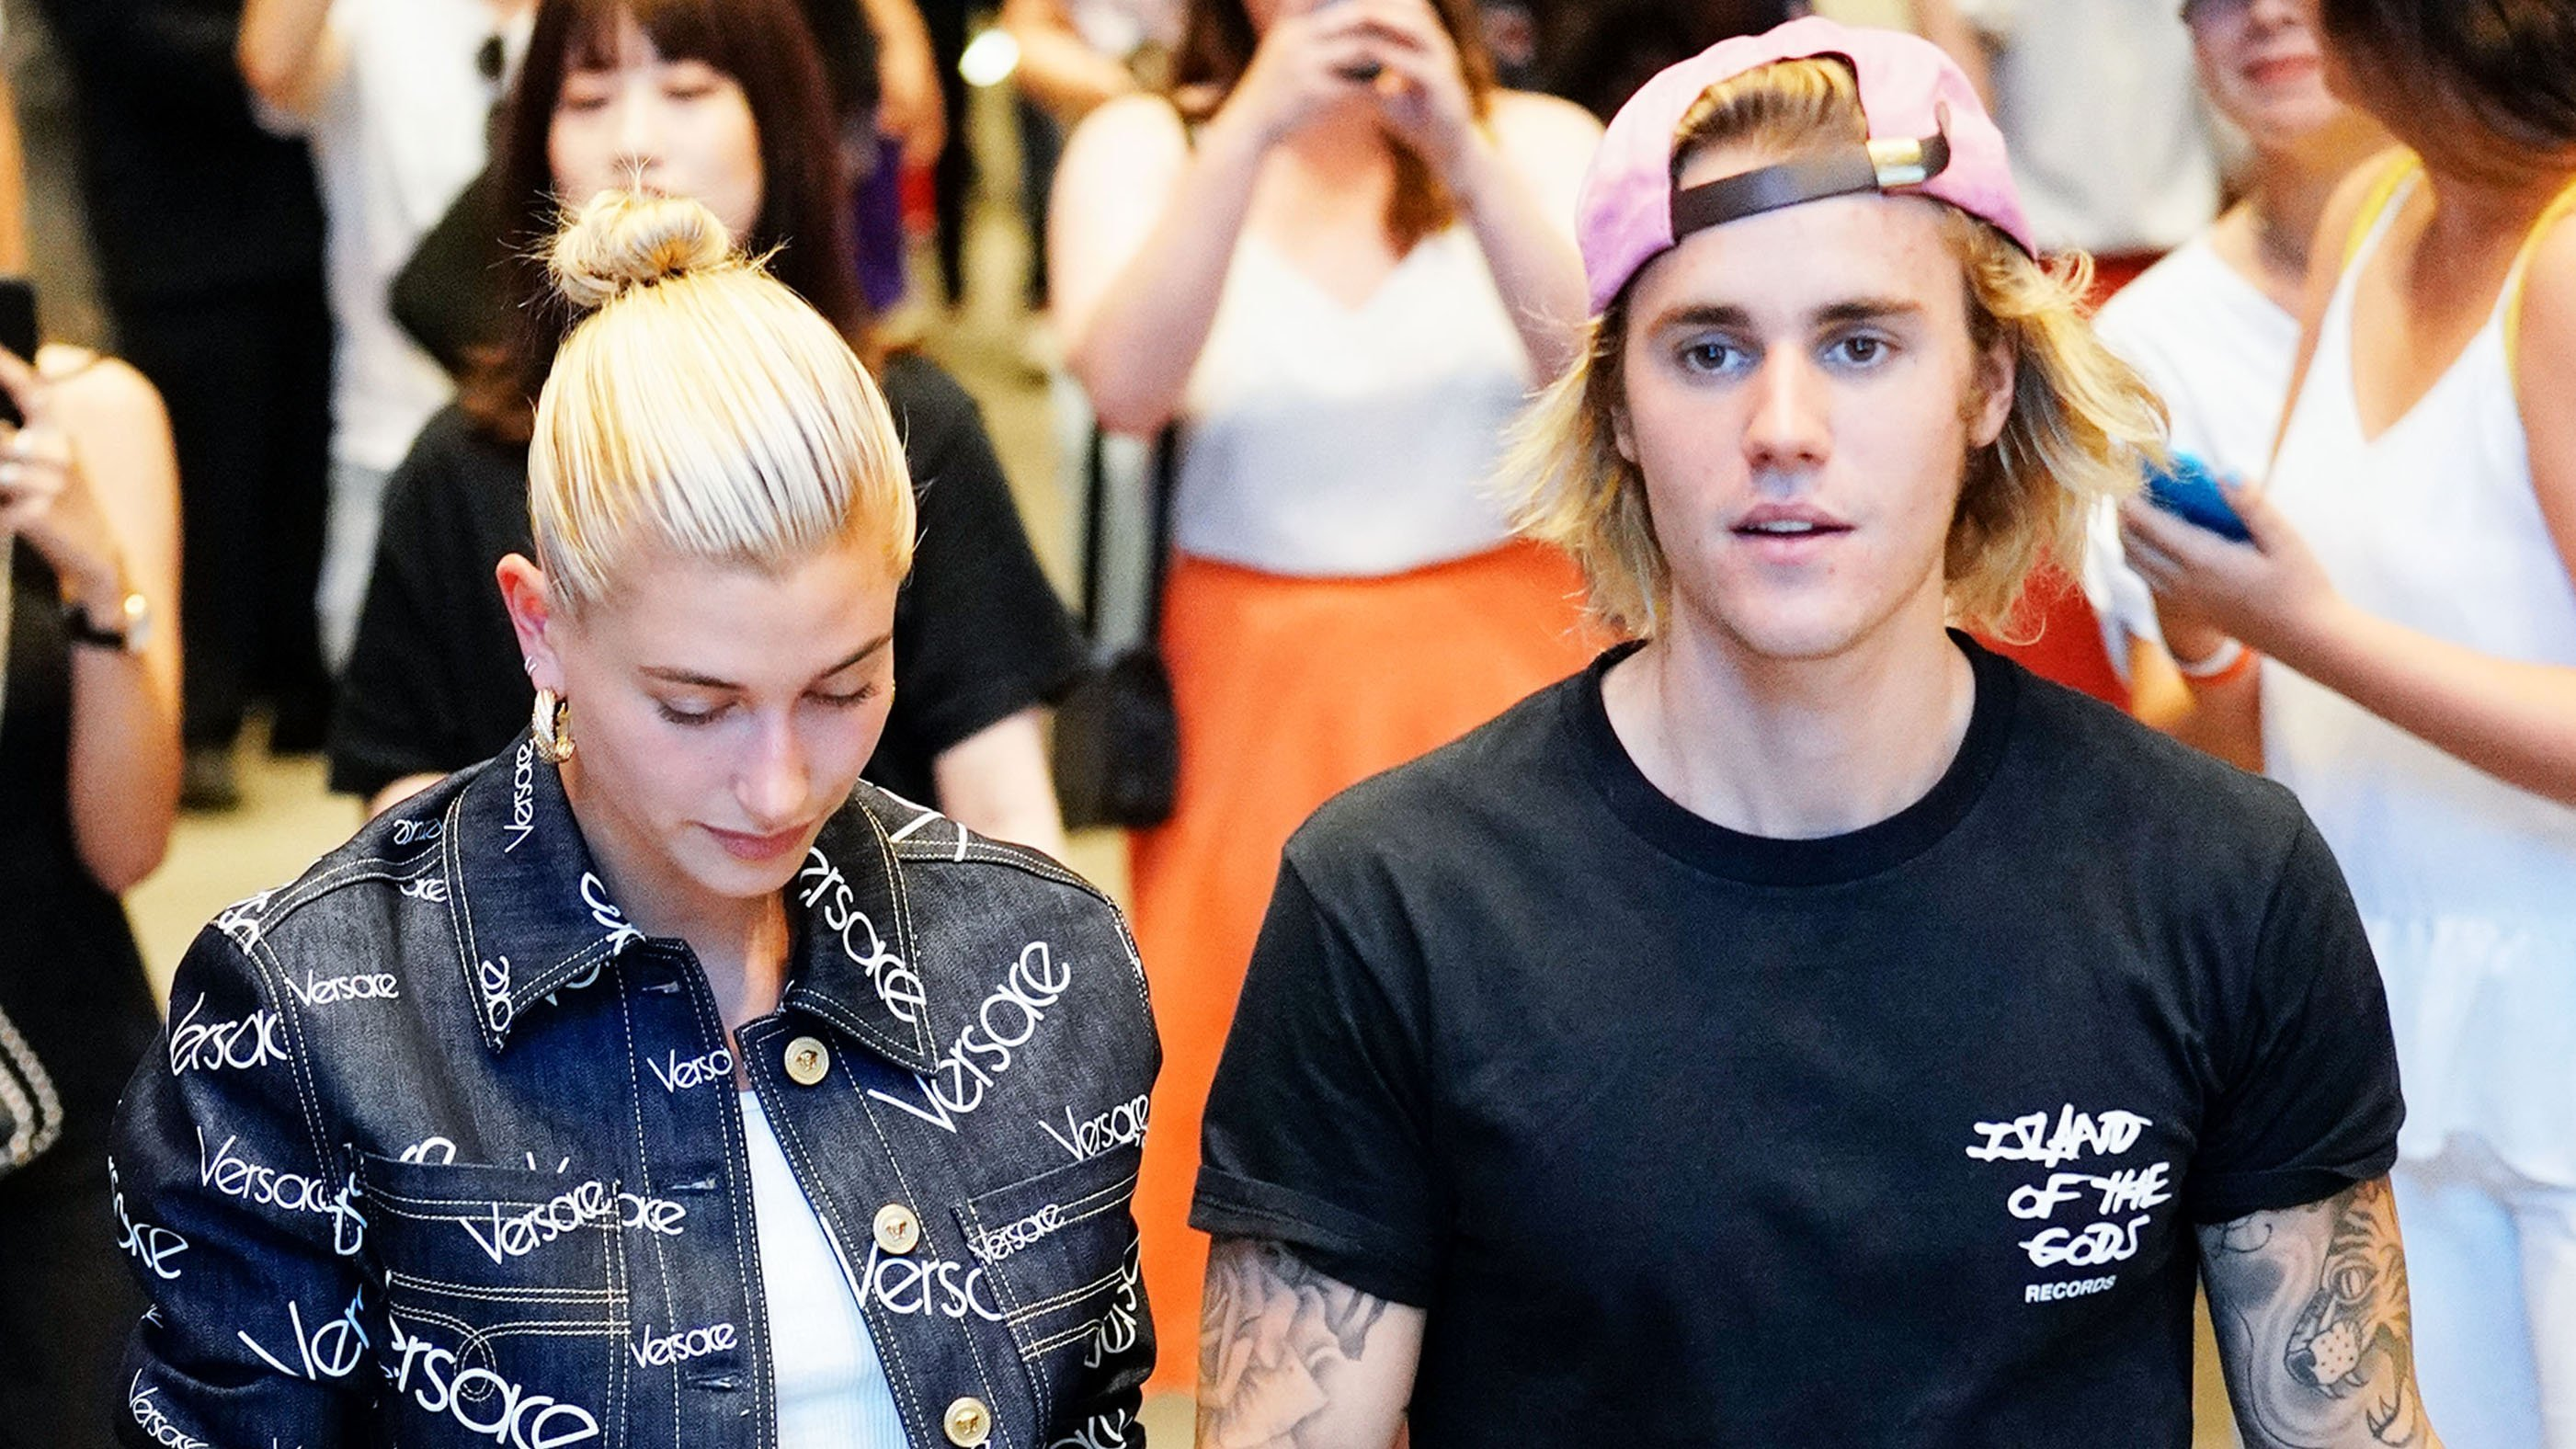 Singer Justin Bieber and model Hailey Baldwin got engaged over the weekend, a source close to the singer confirmed to CNN.